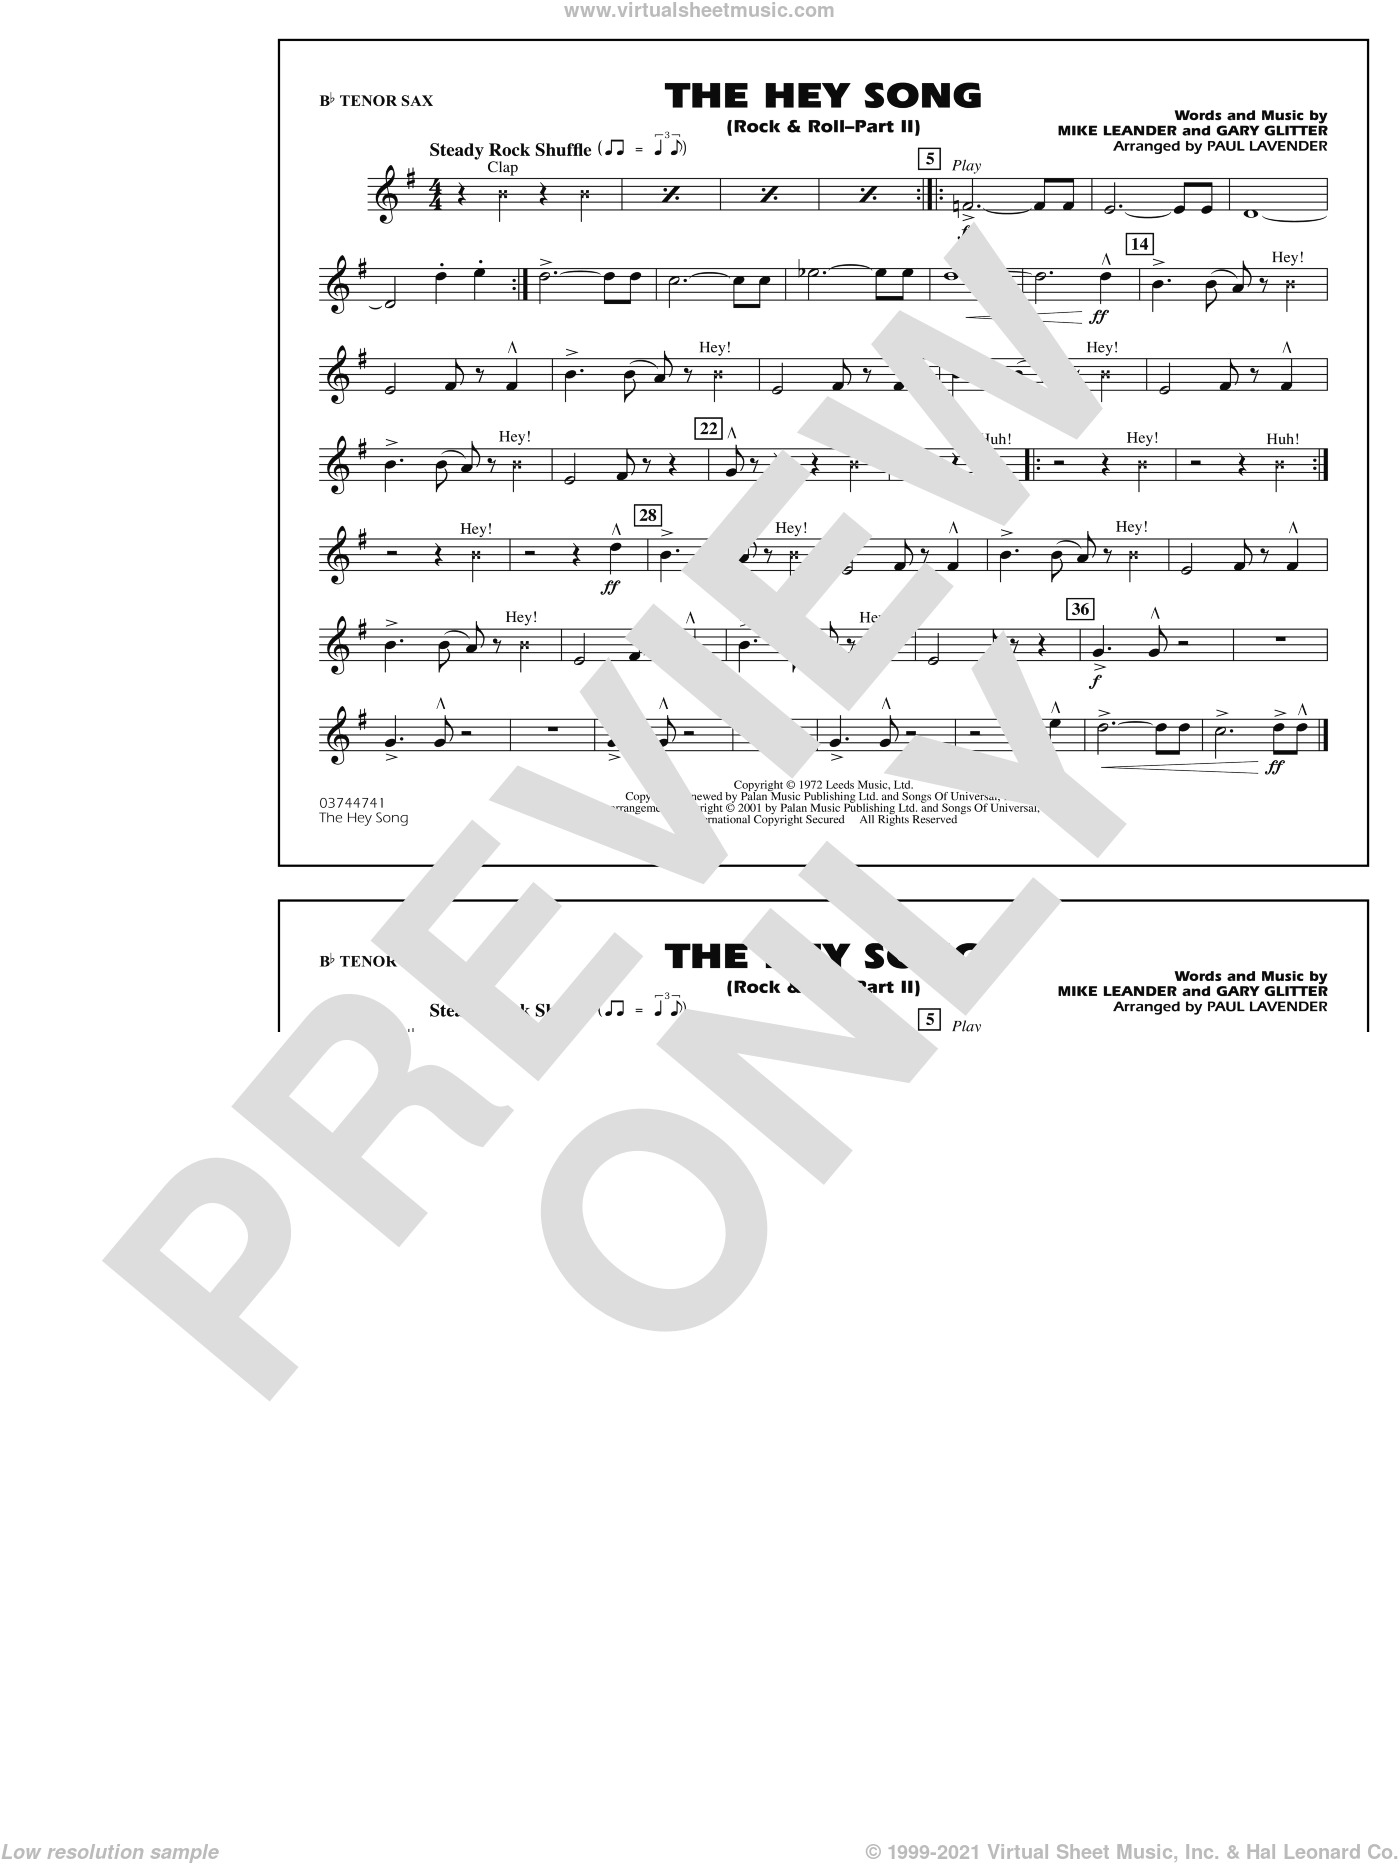 Rock and Roll, part ii (the hey song) sheet music for marching band (Bb tenor sax) by Mike Leander